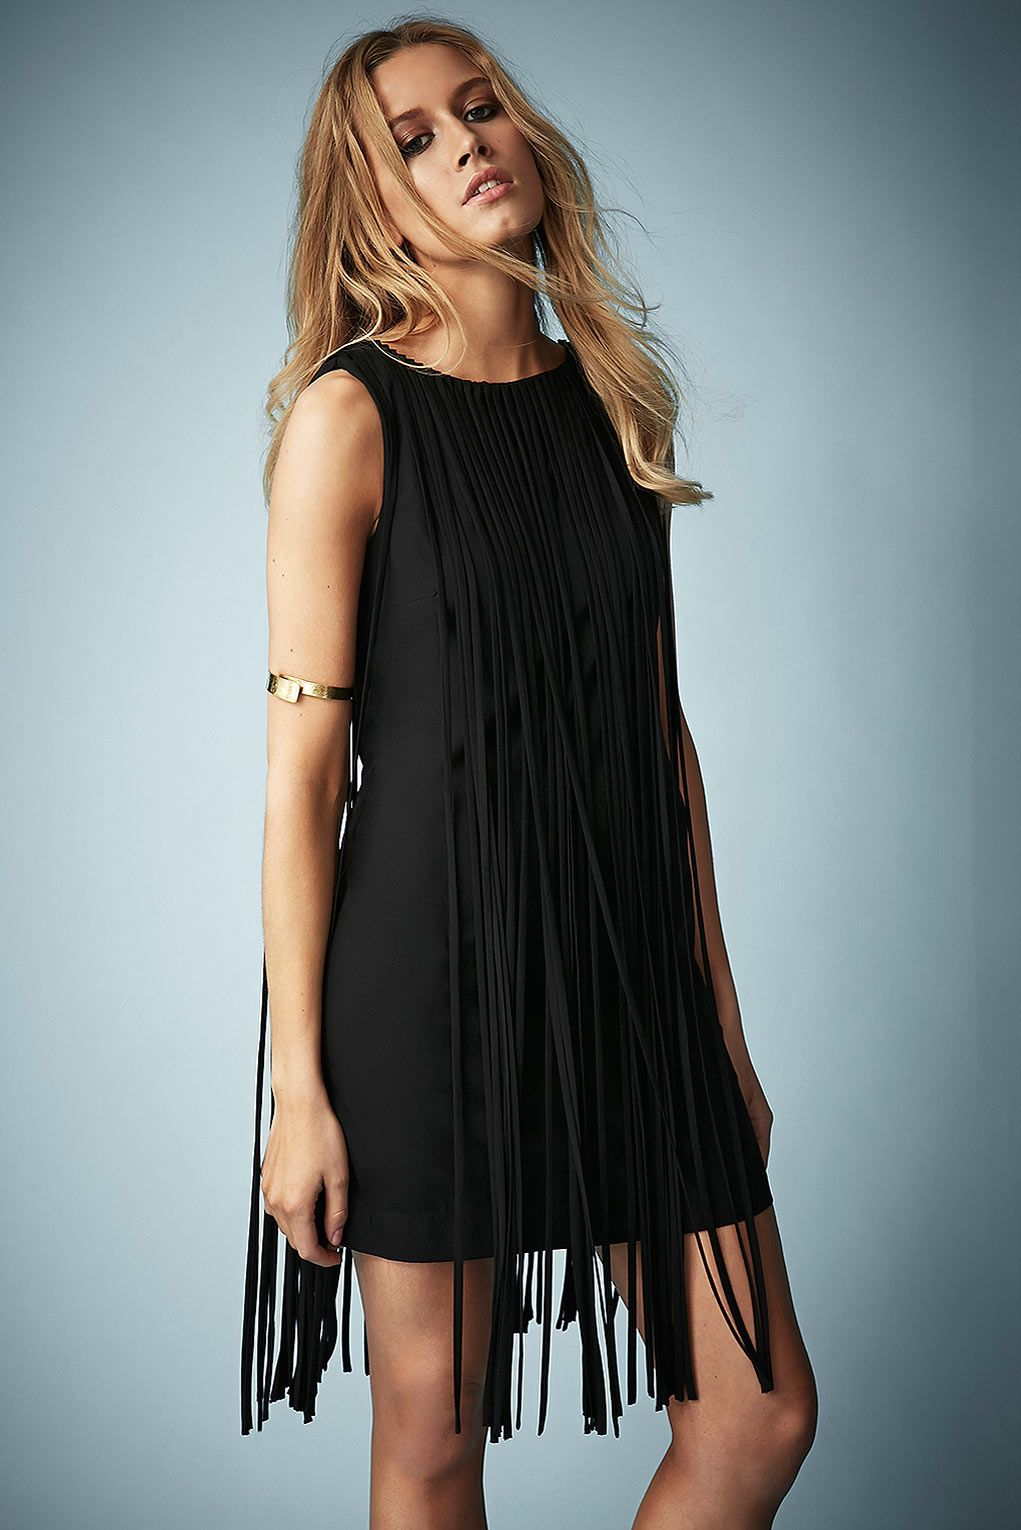 A fabulous 1920s style Topshop fringed